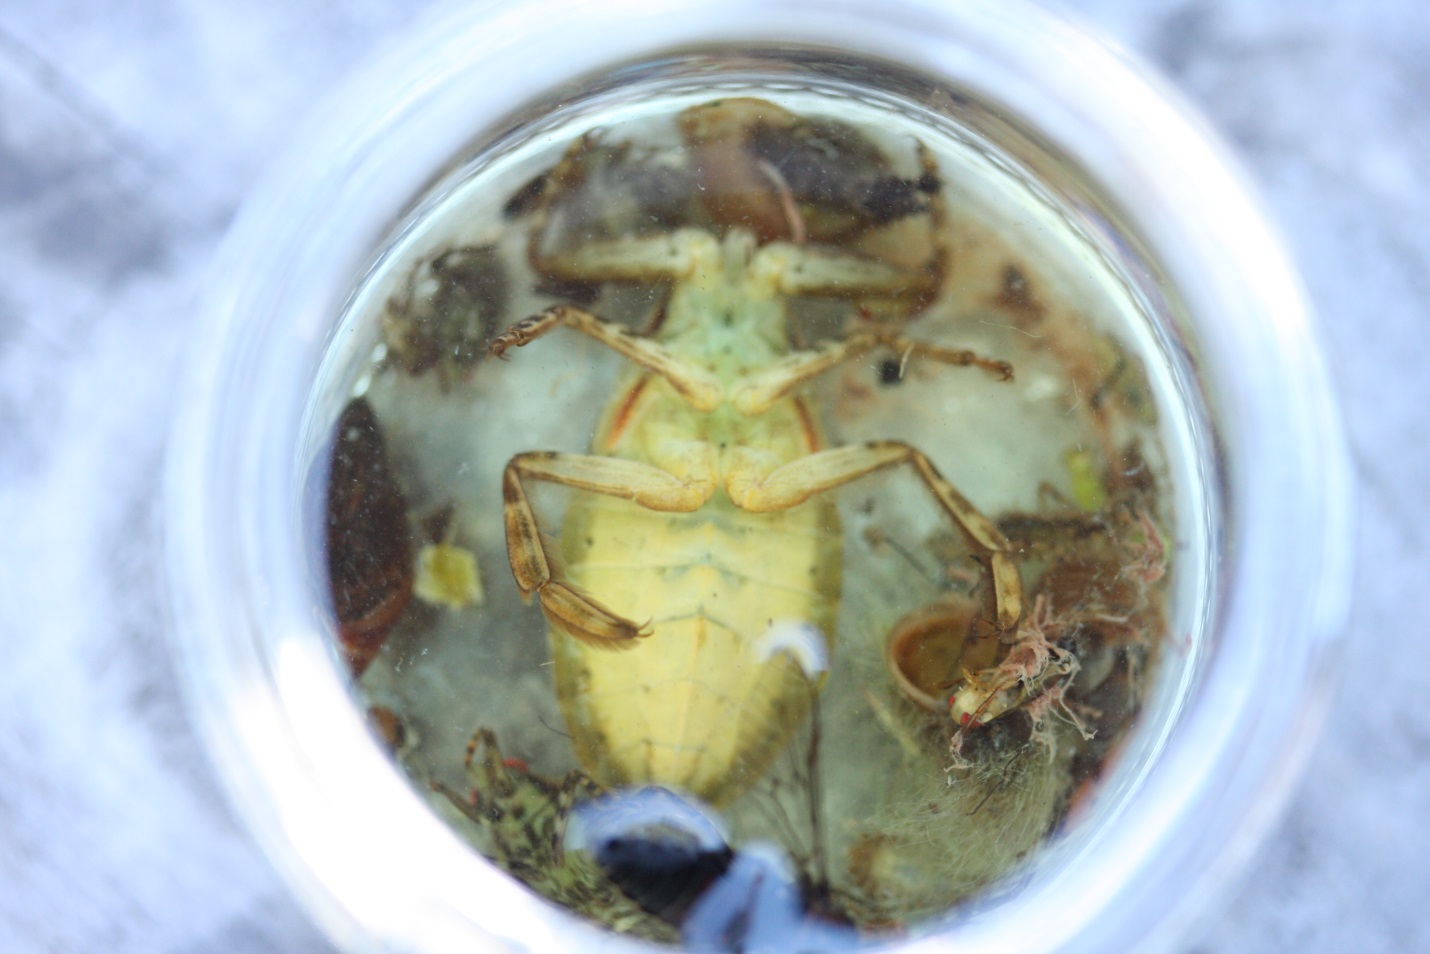 Here's a photo of one of the belostomatids caught during our sampling. As you can see it's not quite as big as the giant water bug from Madagascar, but it still dwarfs the fly in the lower right corner!